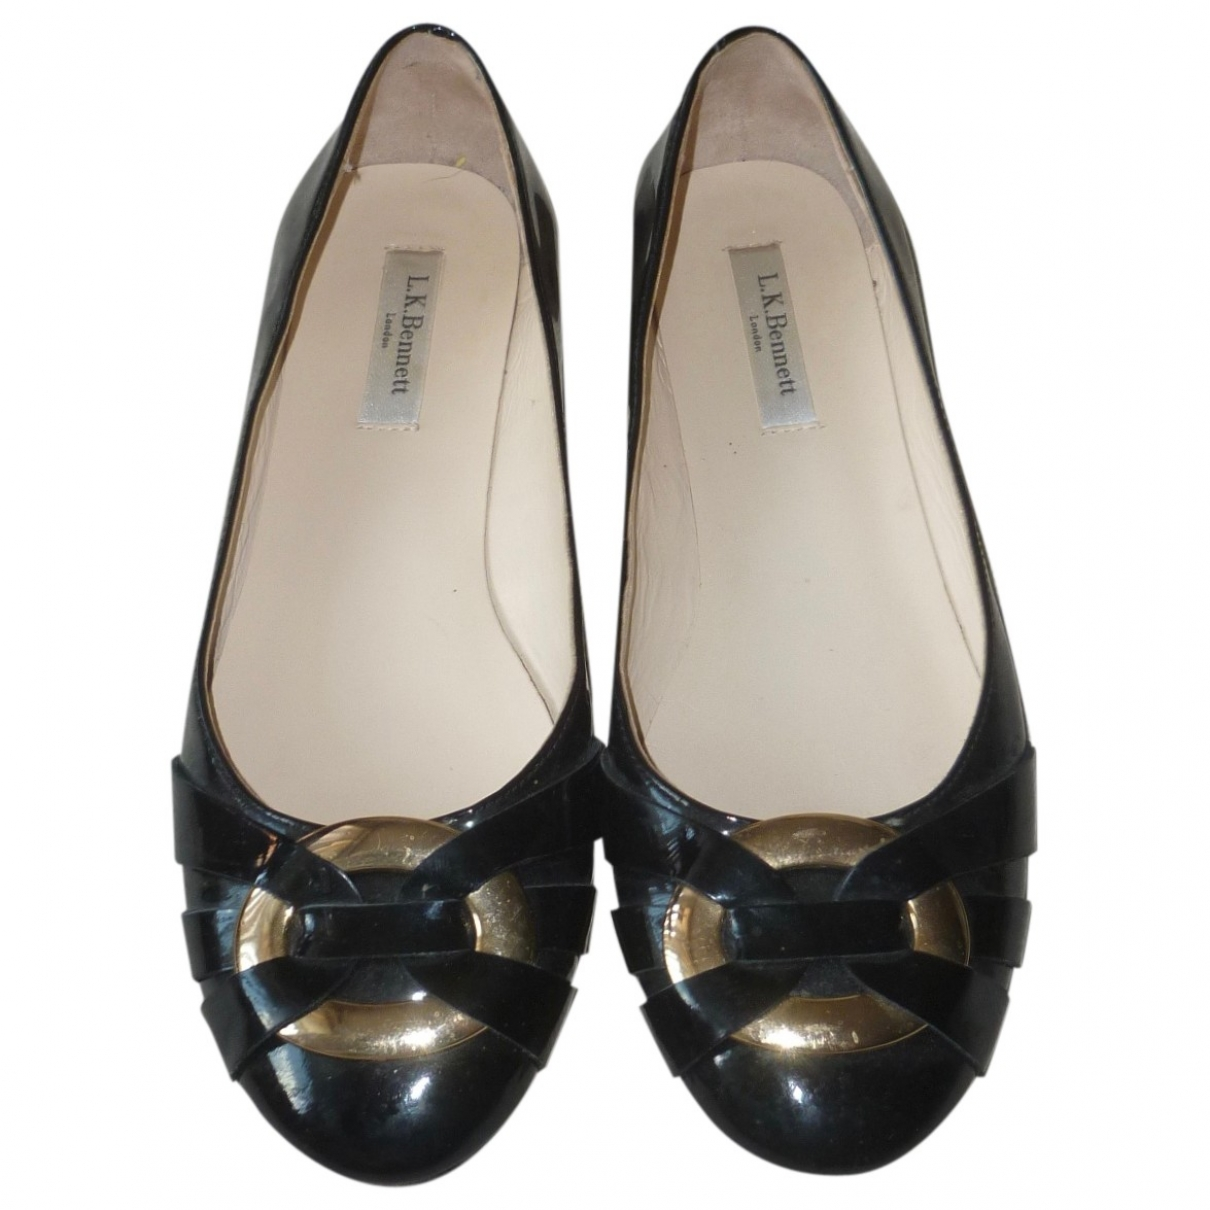 Lk Bennett \N Black Patent leather Ballet flats for Women 38.5 EU